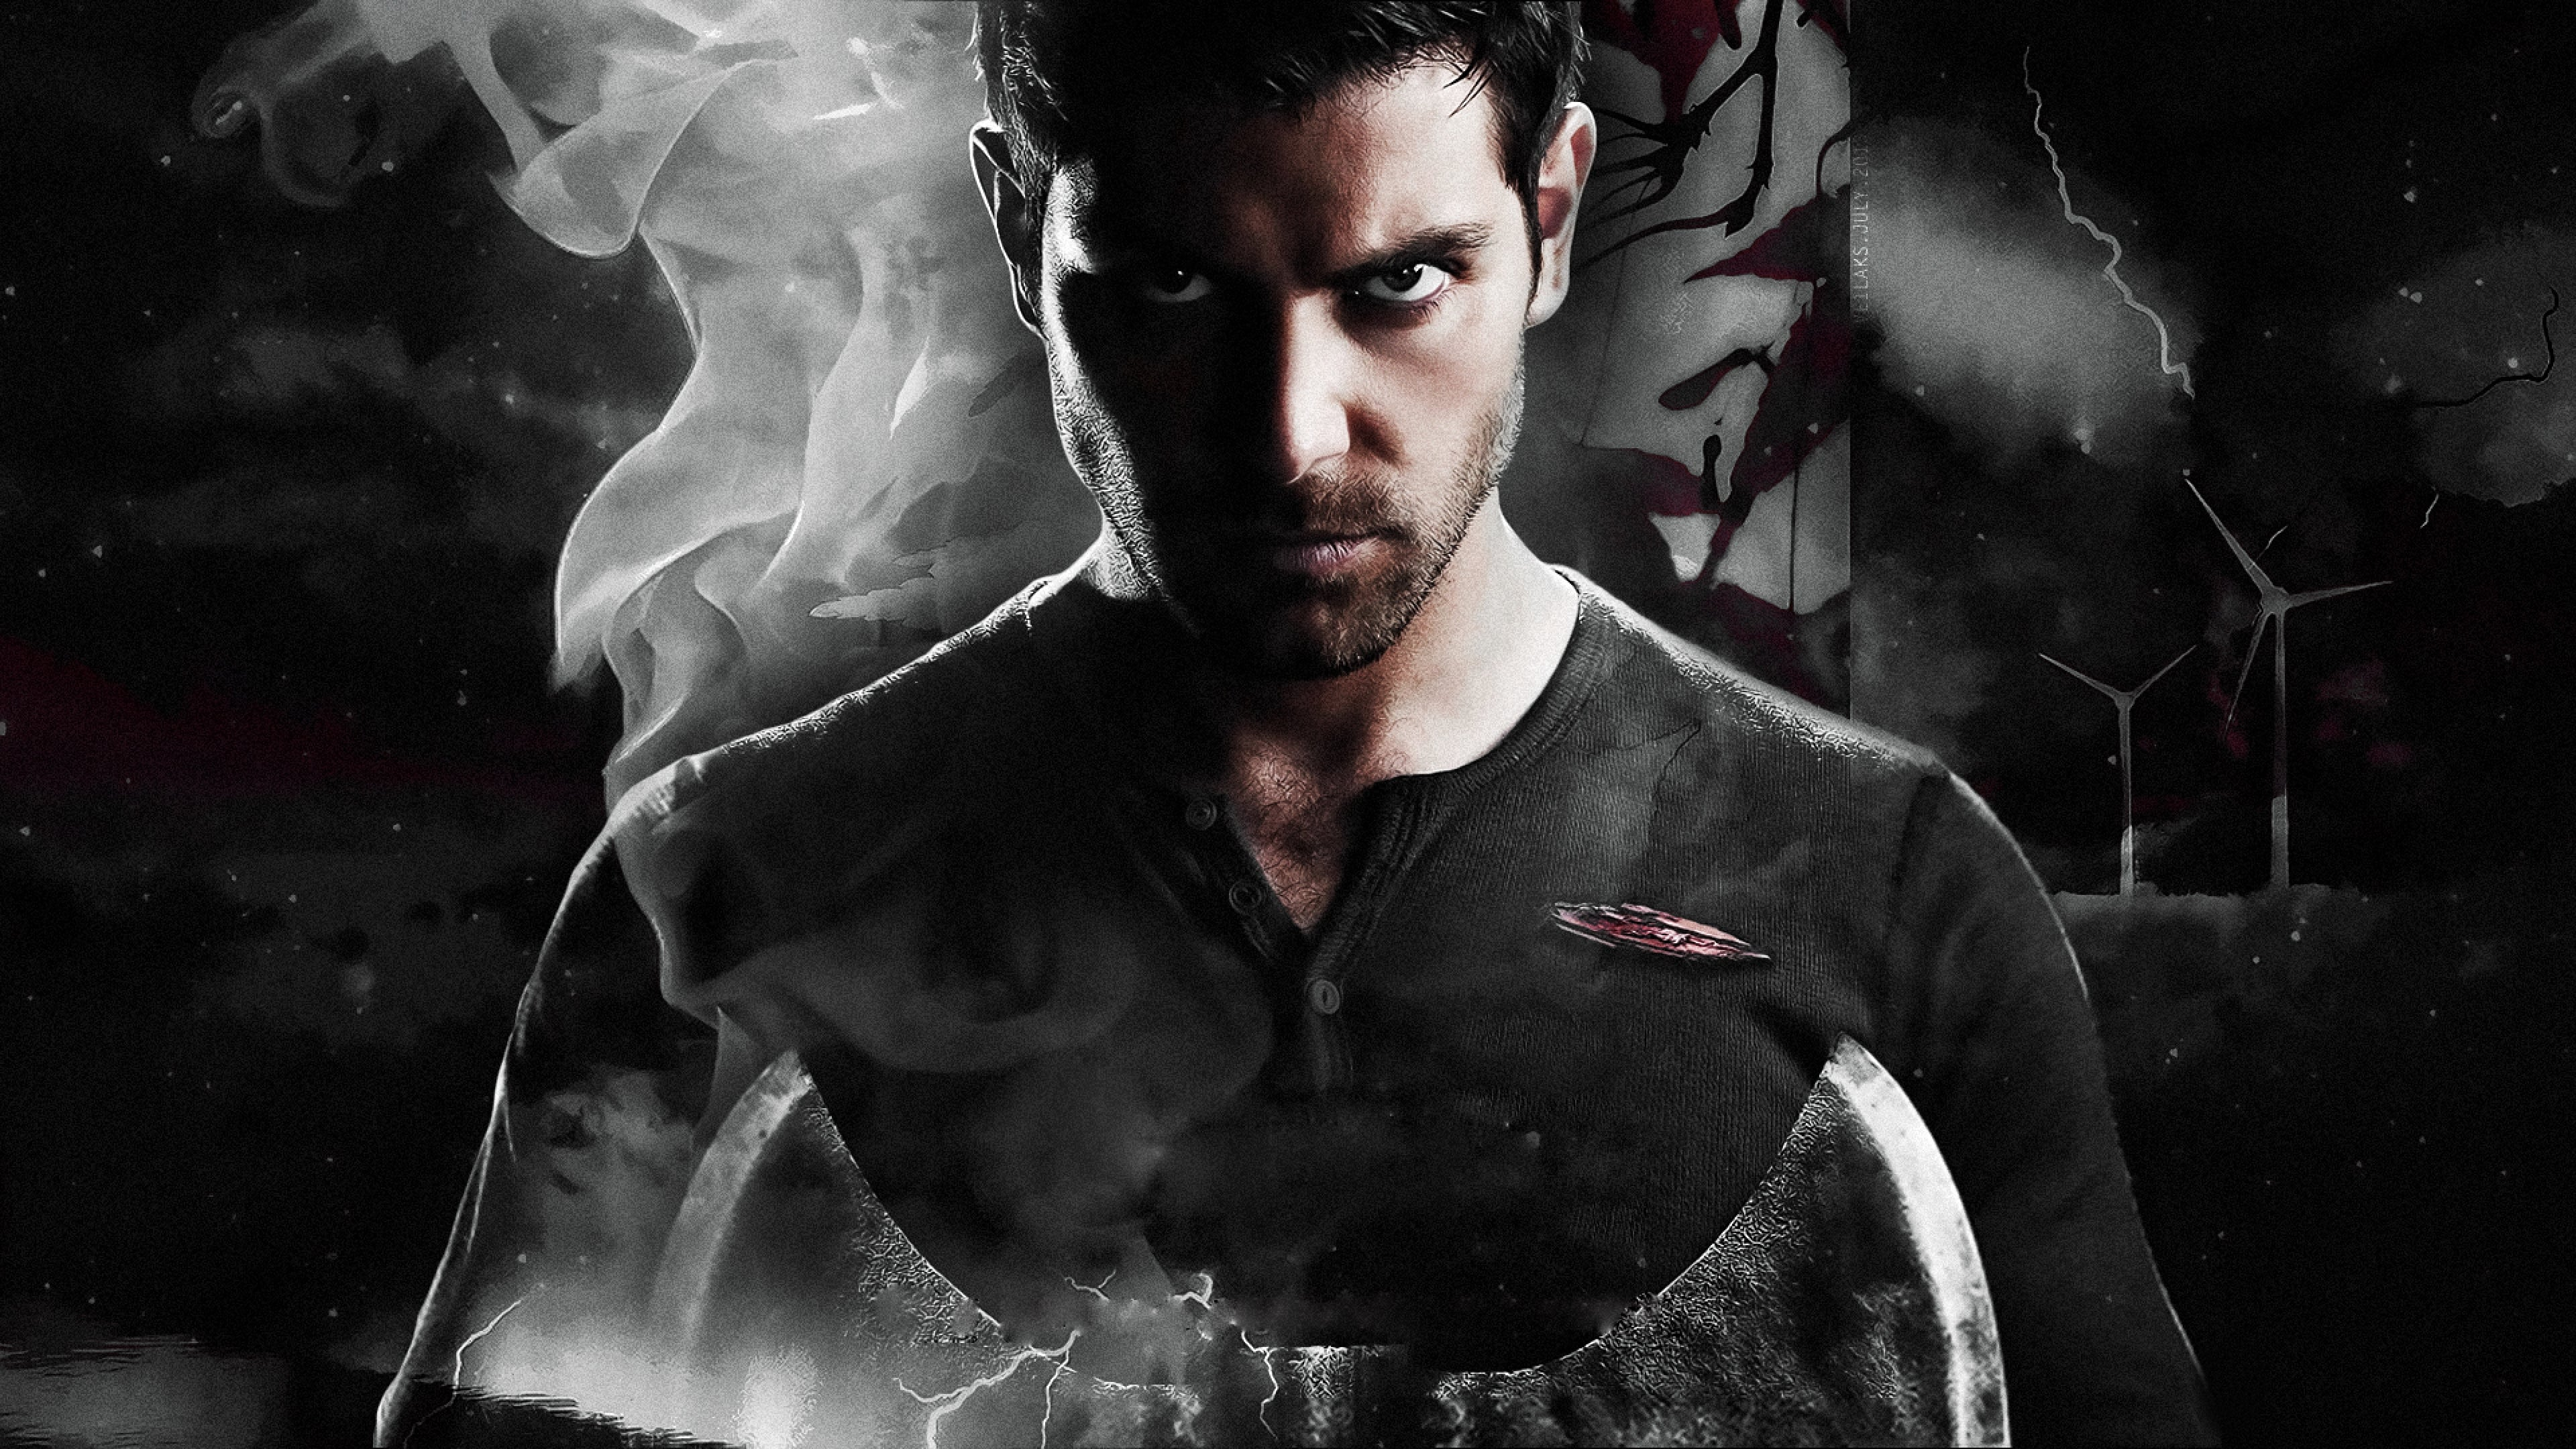 Watch Full Grimm Season 2 episode TV Series Without Downloading